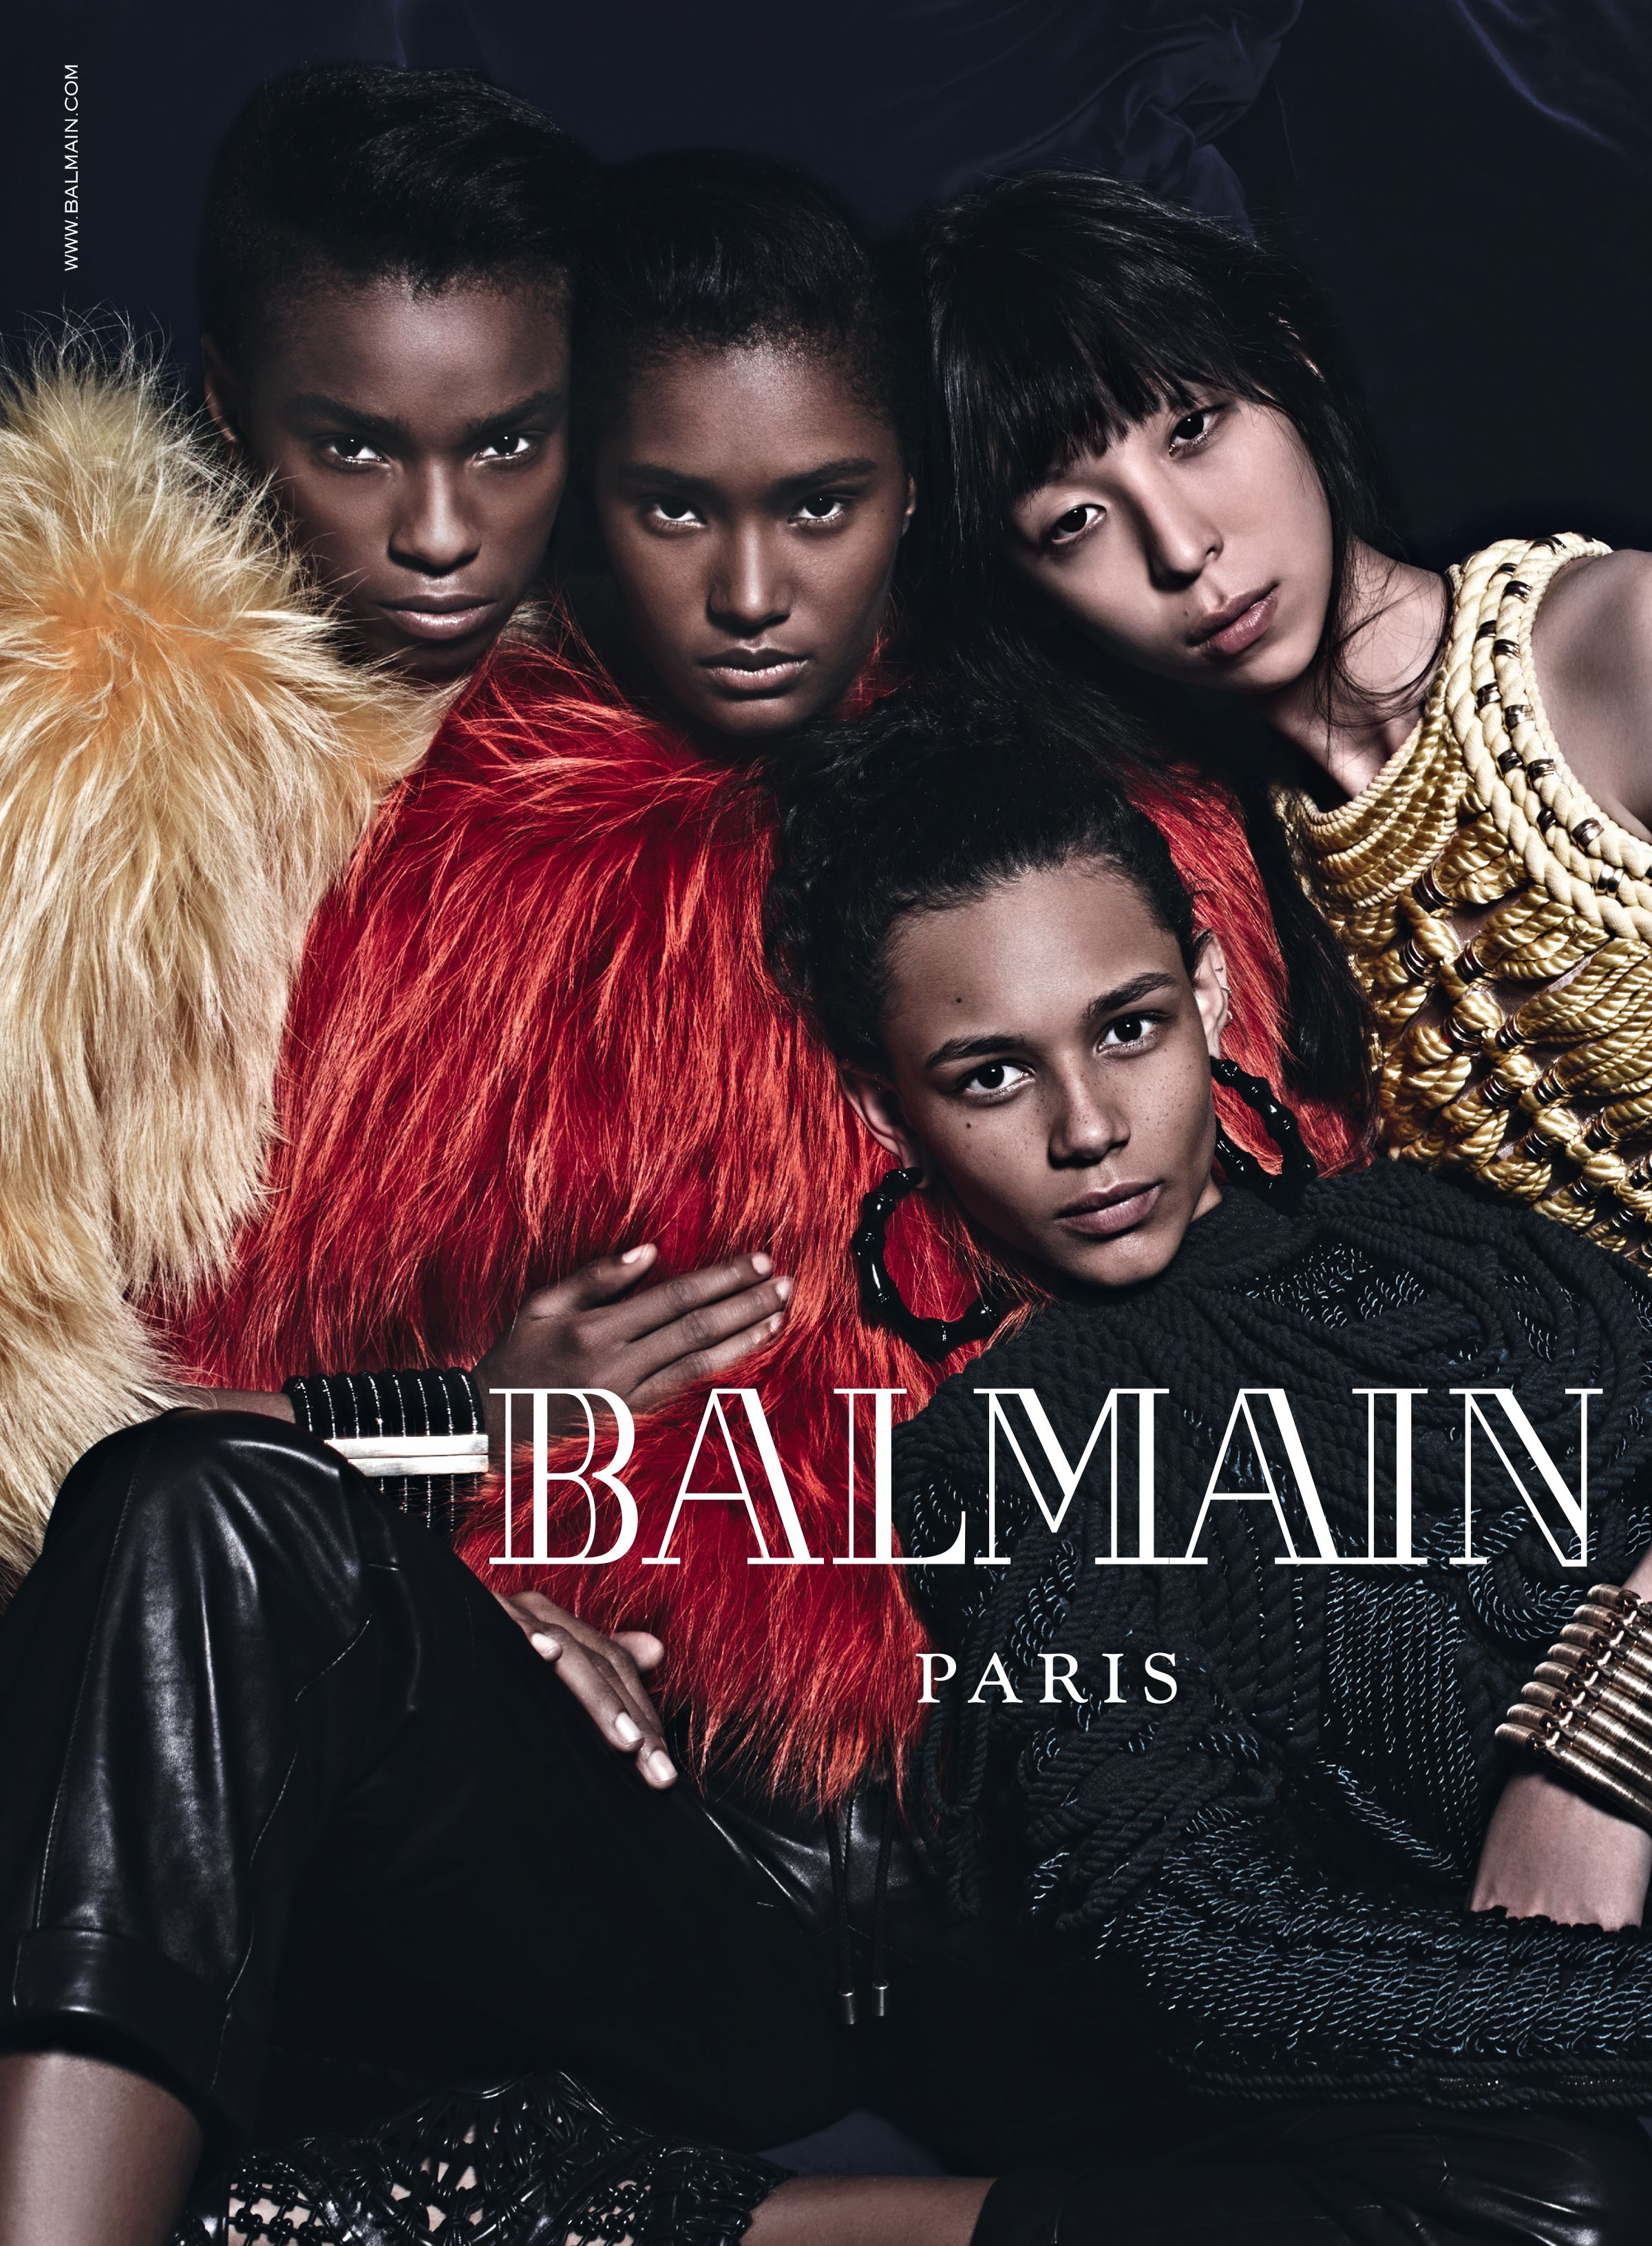 While we #STAYHOME, we invite you to relive the best moments from the #BALMAIN archives, starting with #BALMAINFW14.